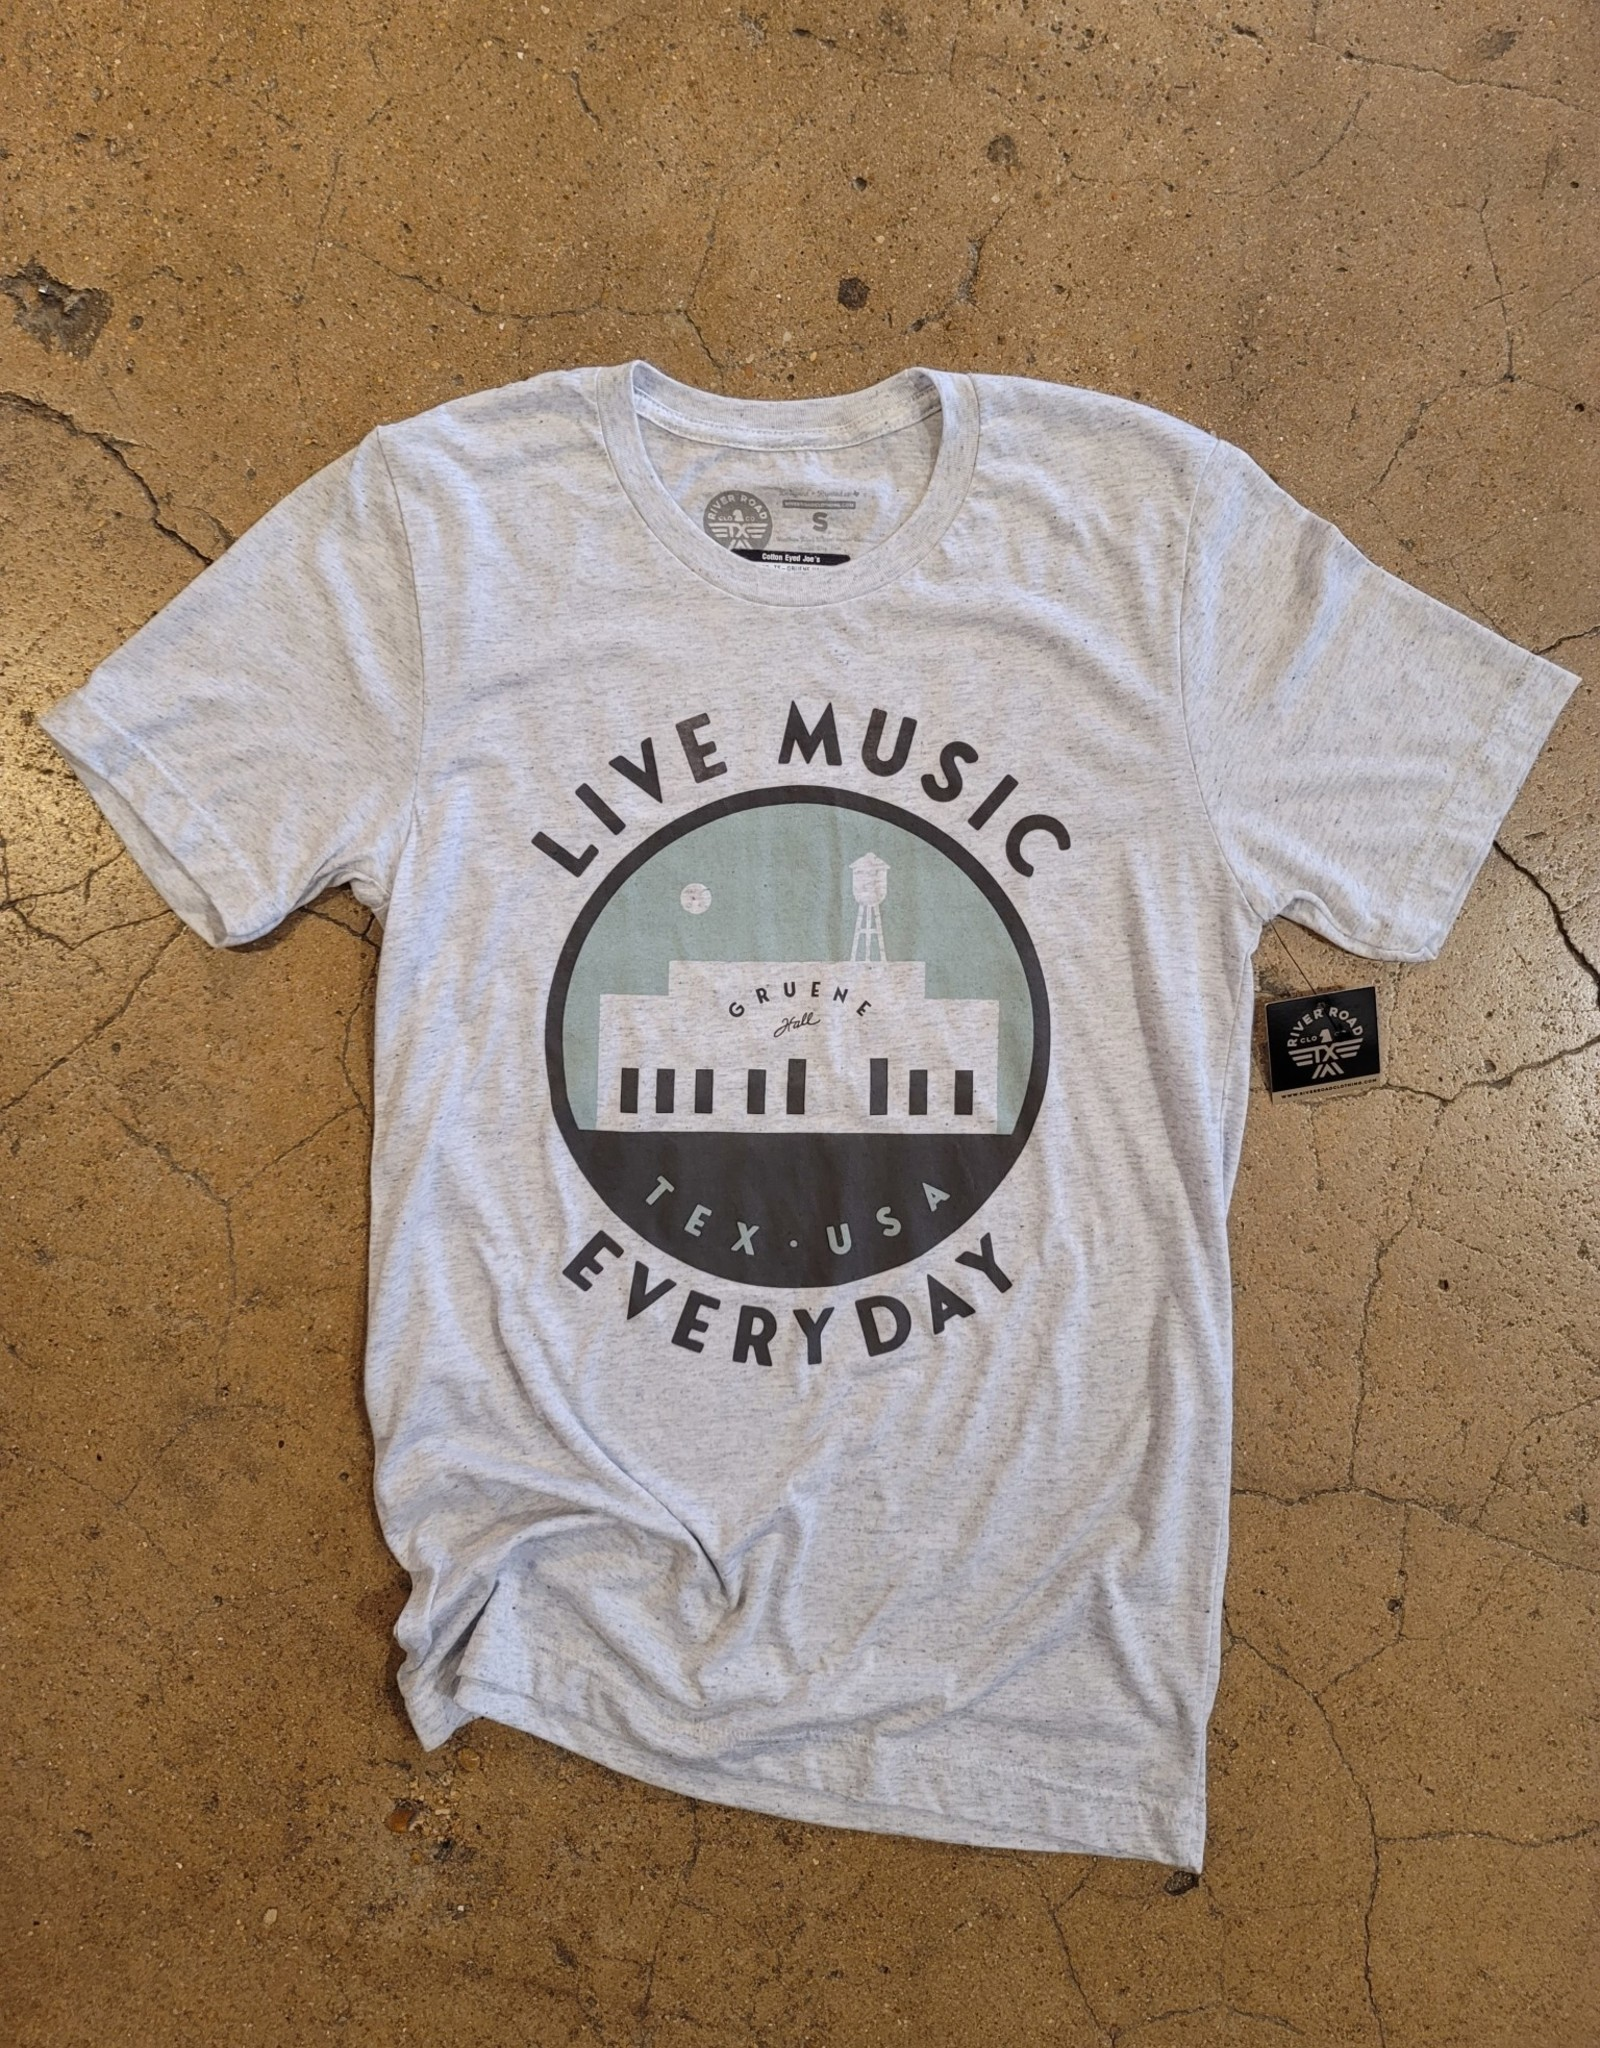 Gruene Hall Live Music Everyday Tee by River Road Clothing